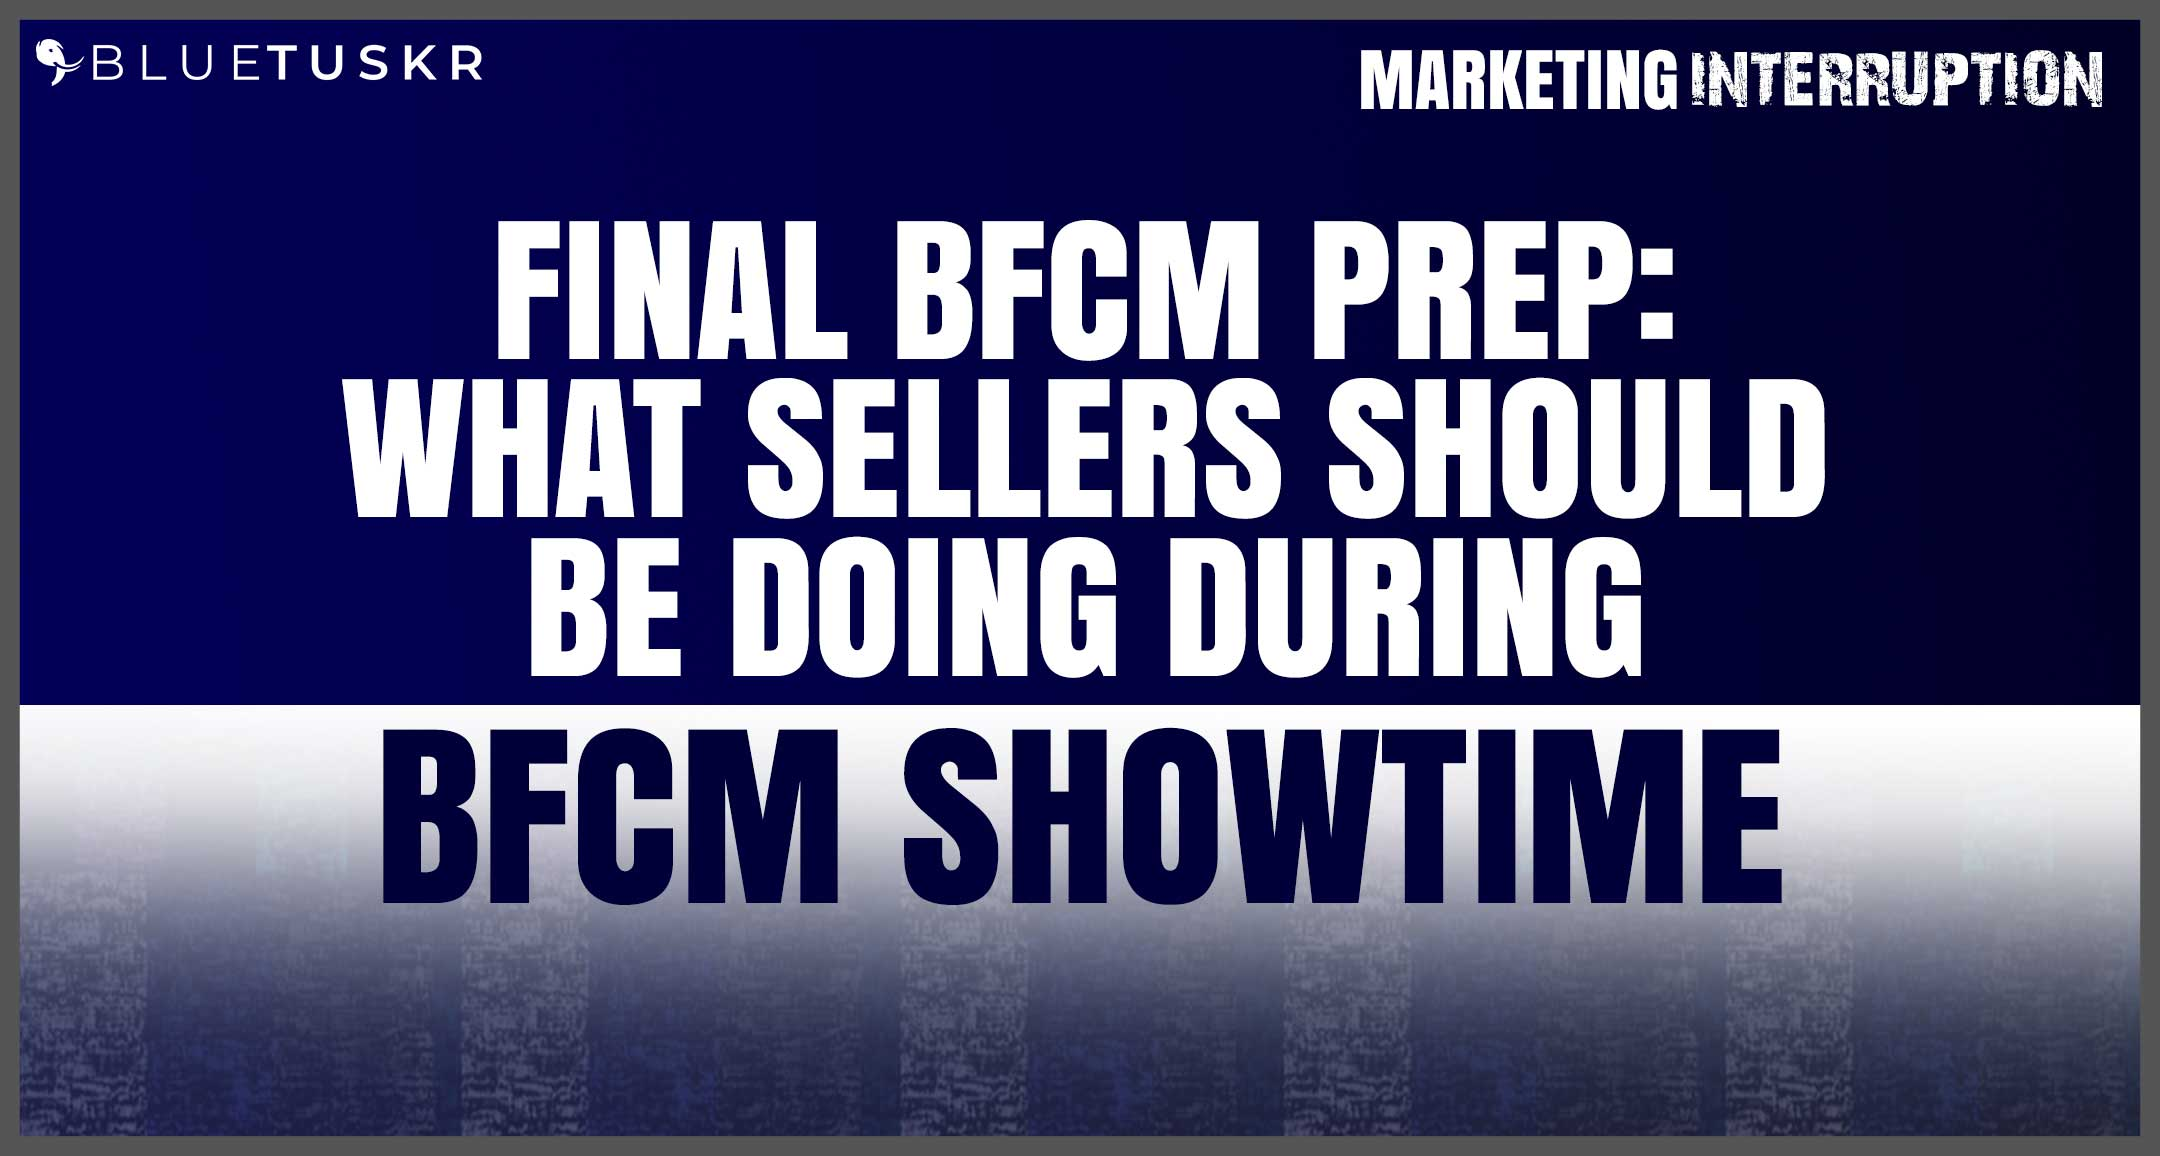 Final BFCM Prep: What Sellers Should Be Doing During BFCM Showtime